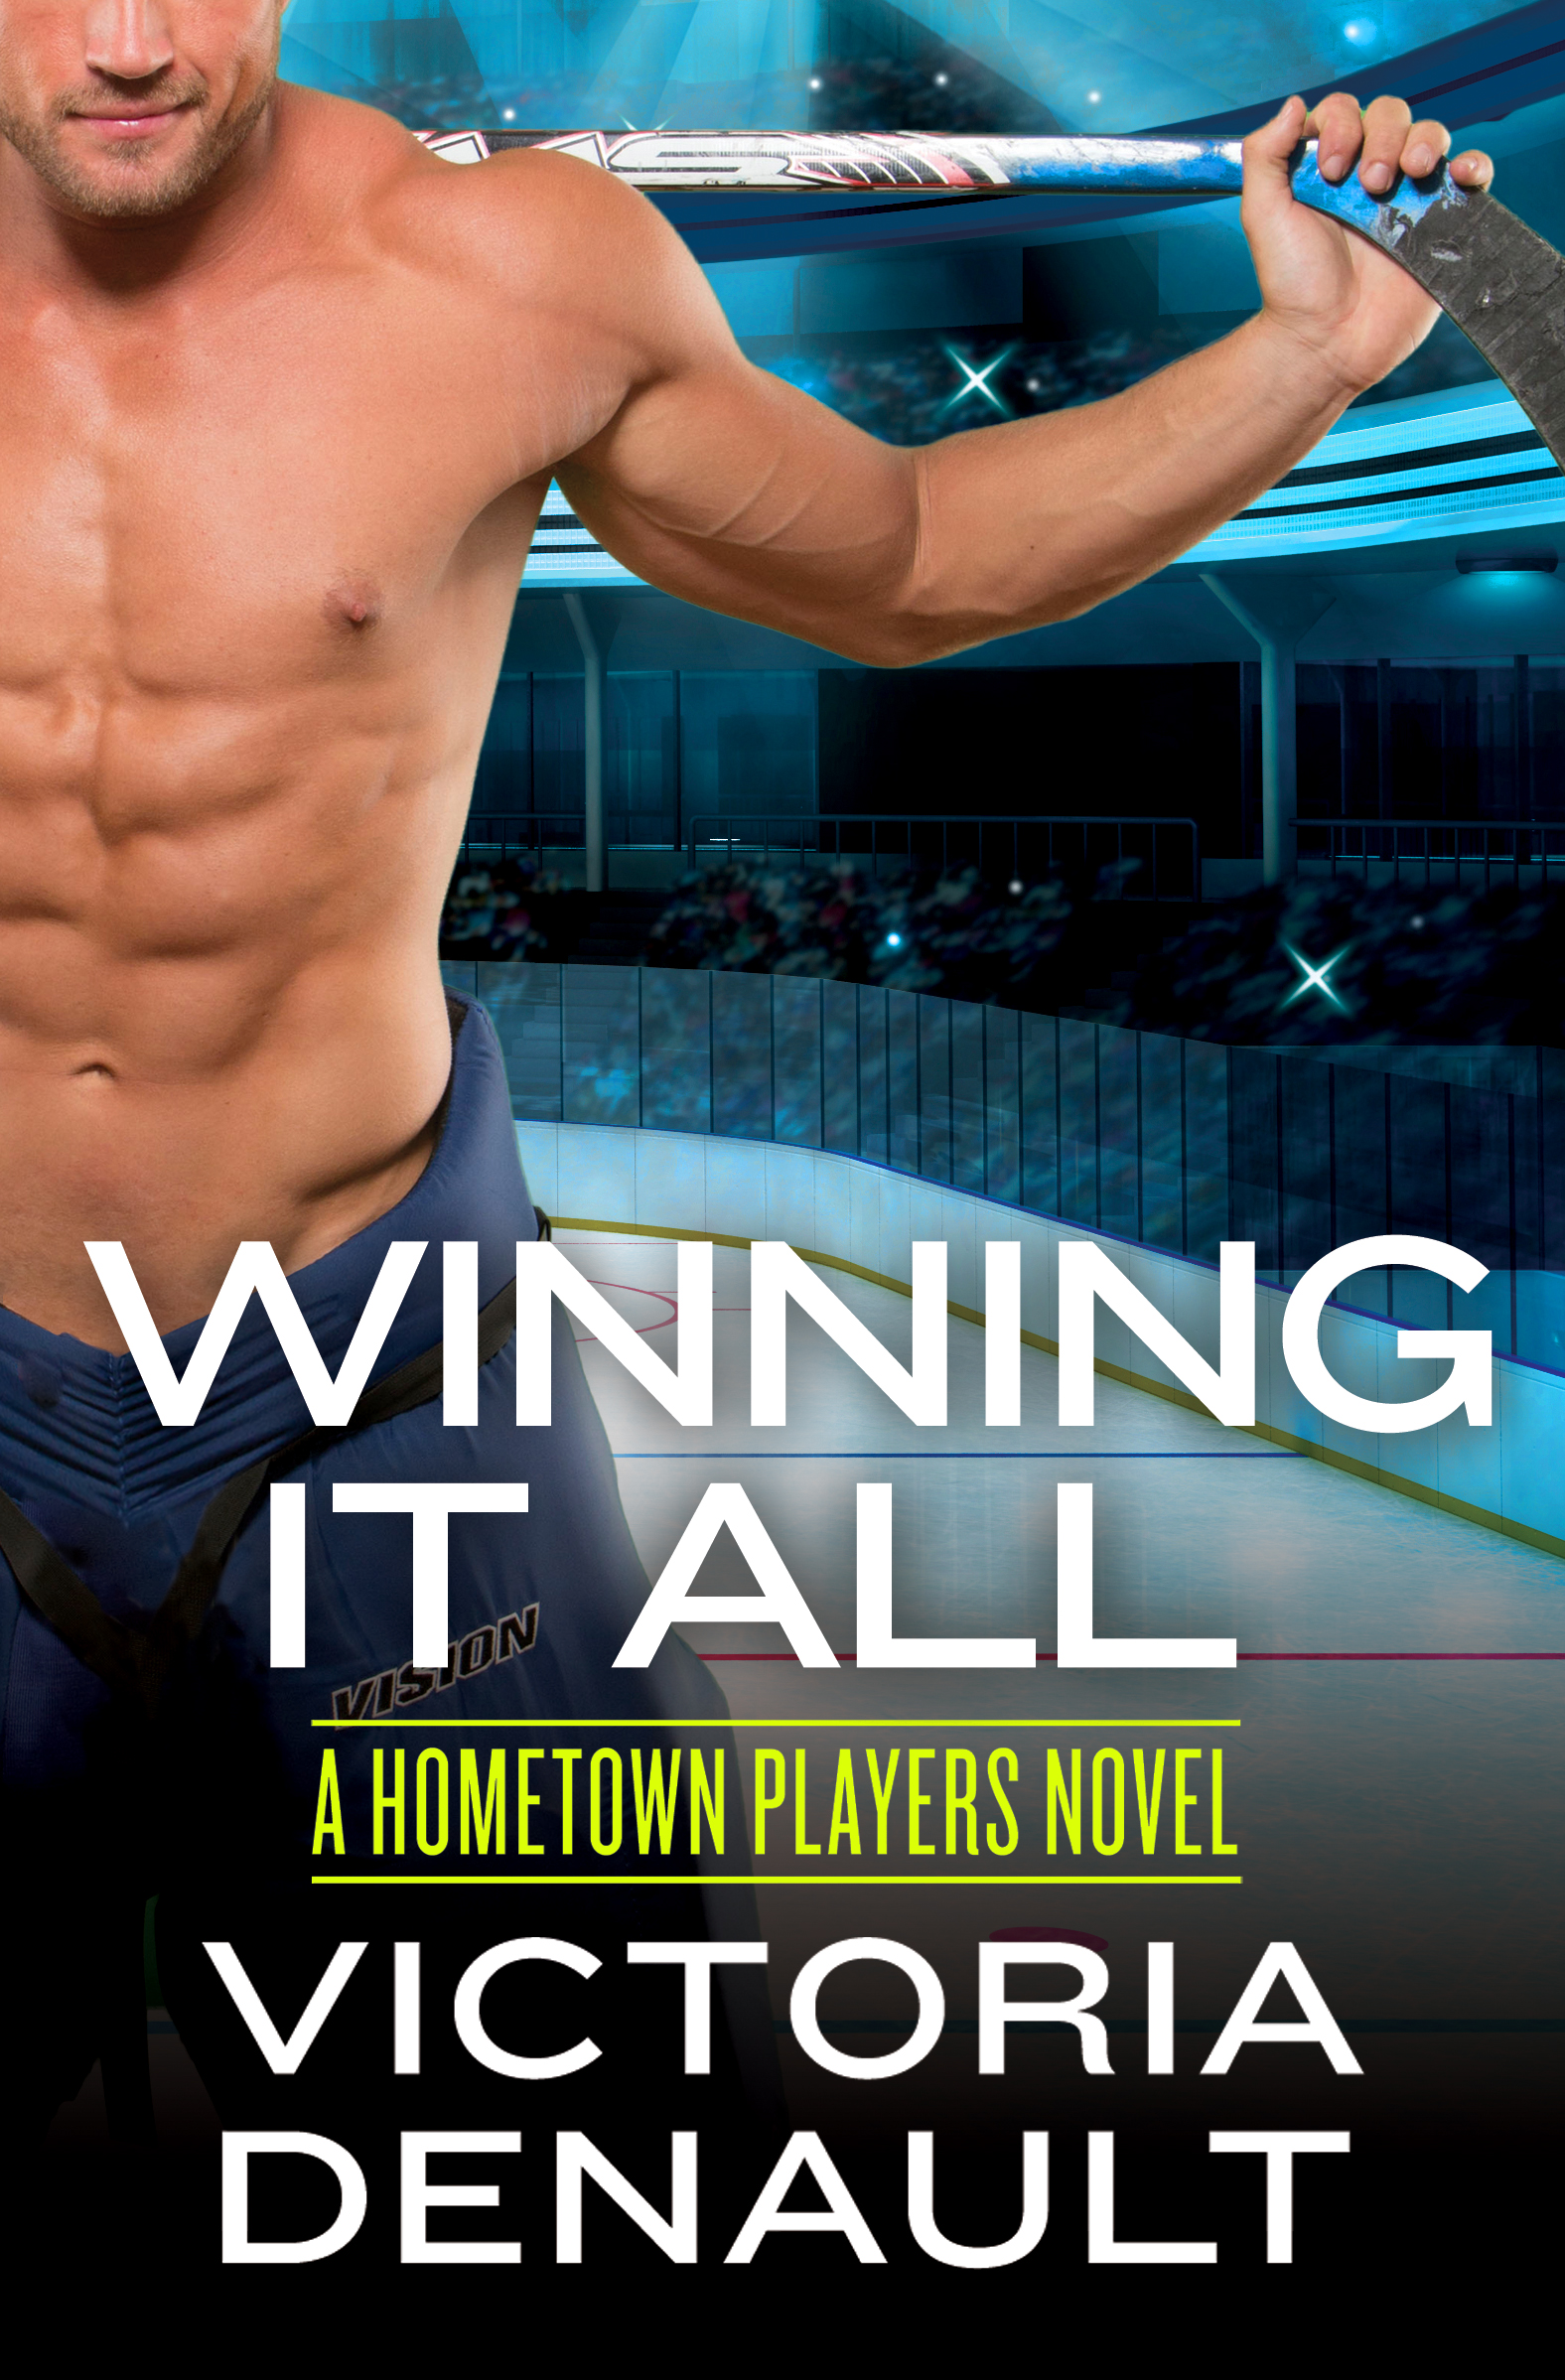 Winning It All by Victoria Denault